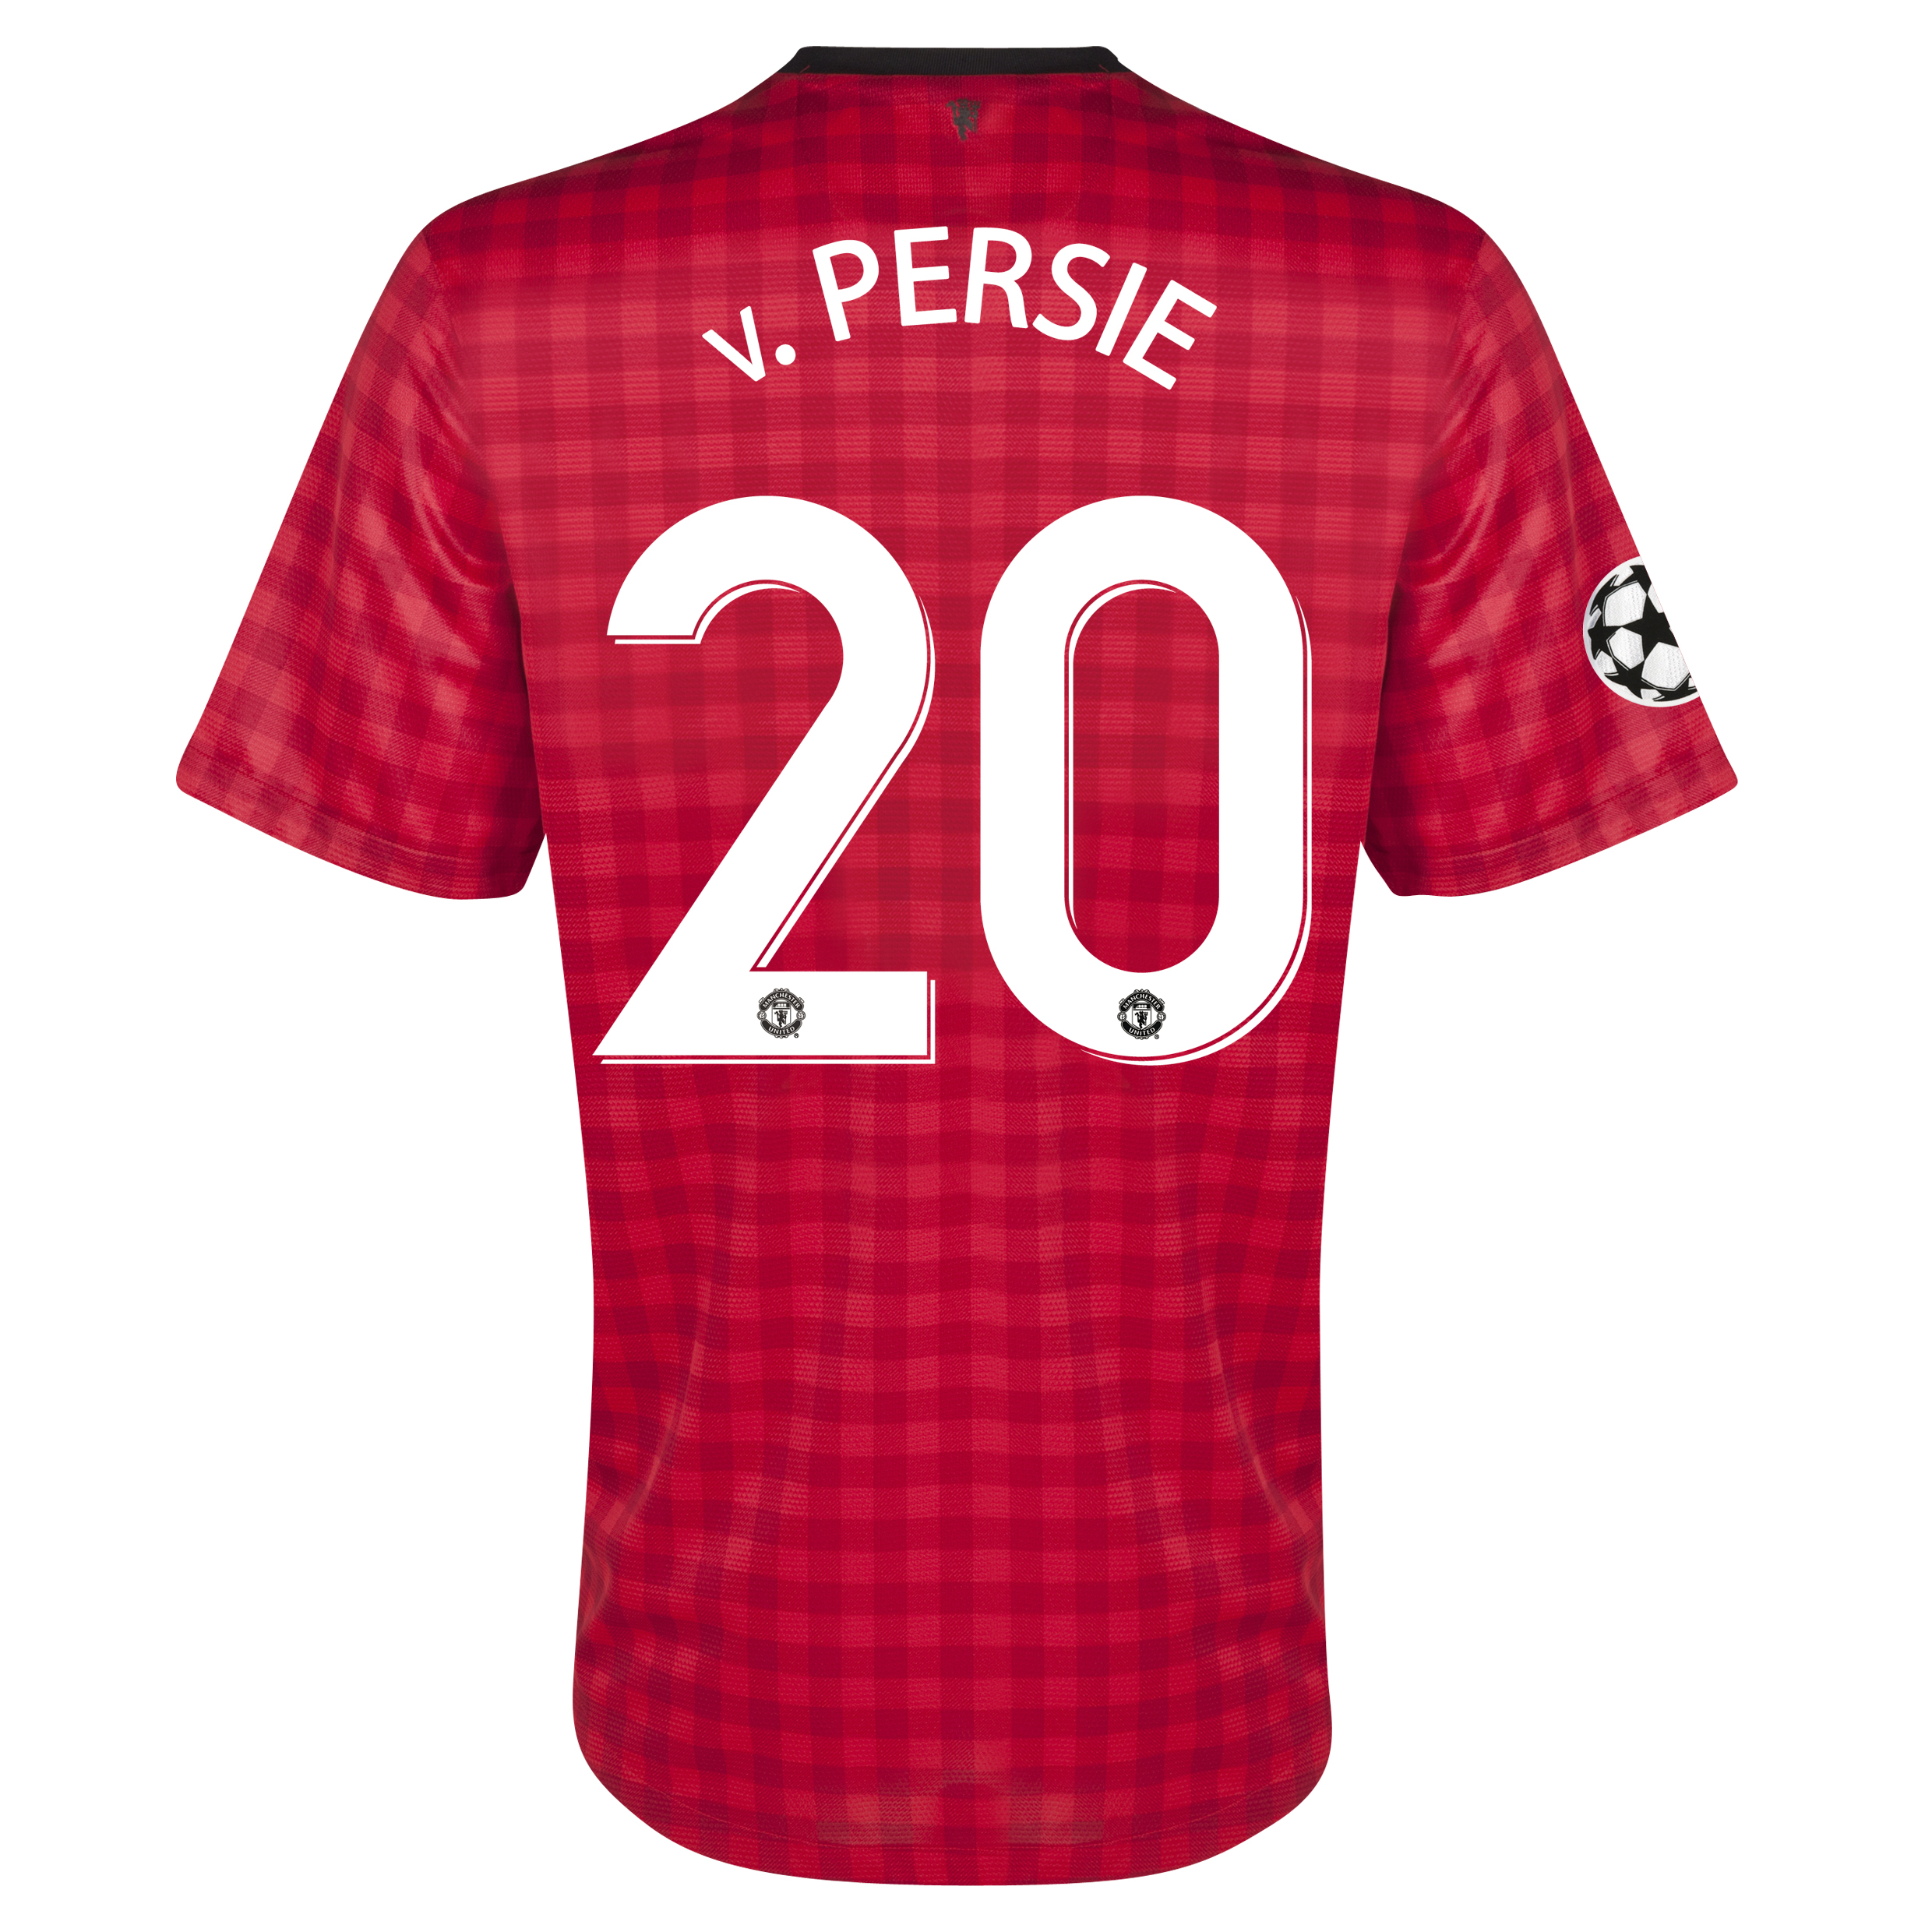 Manchester United UEFA Champions League Home Shirt 2012/13 with v.Persie 20 printing